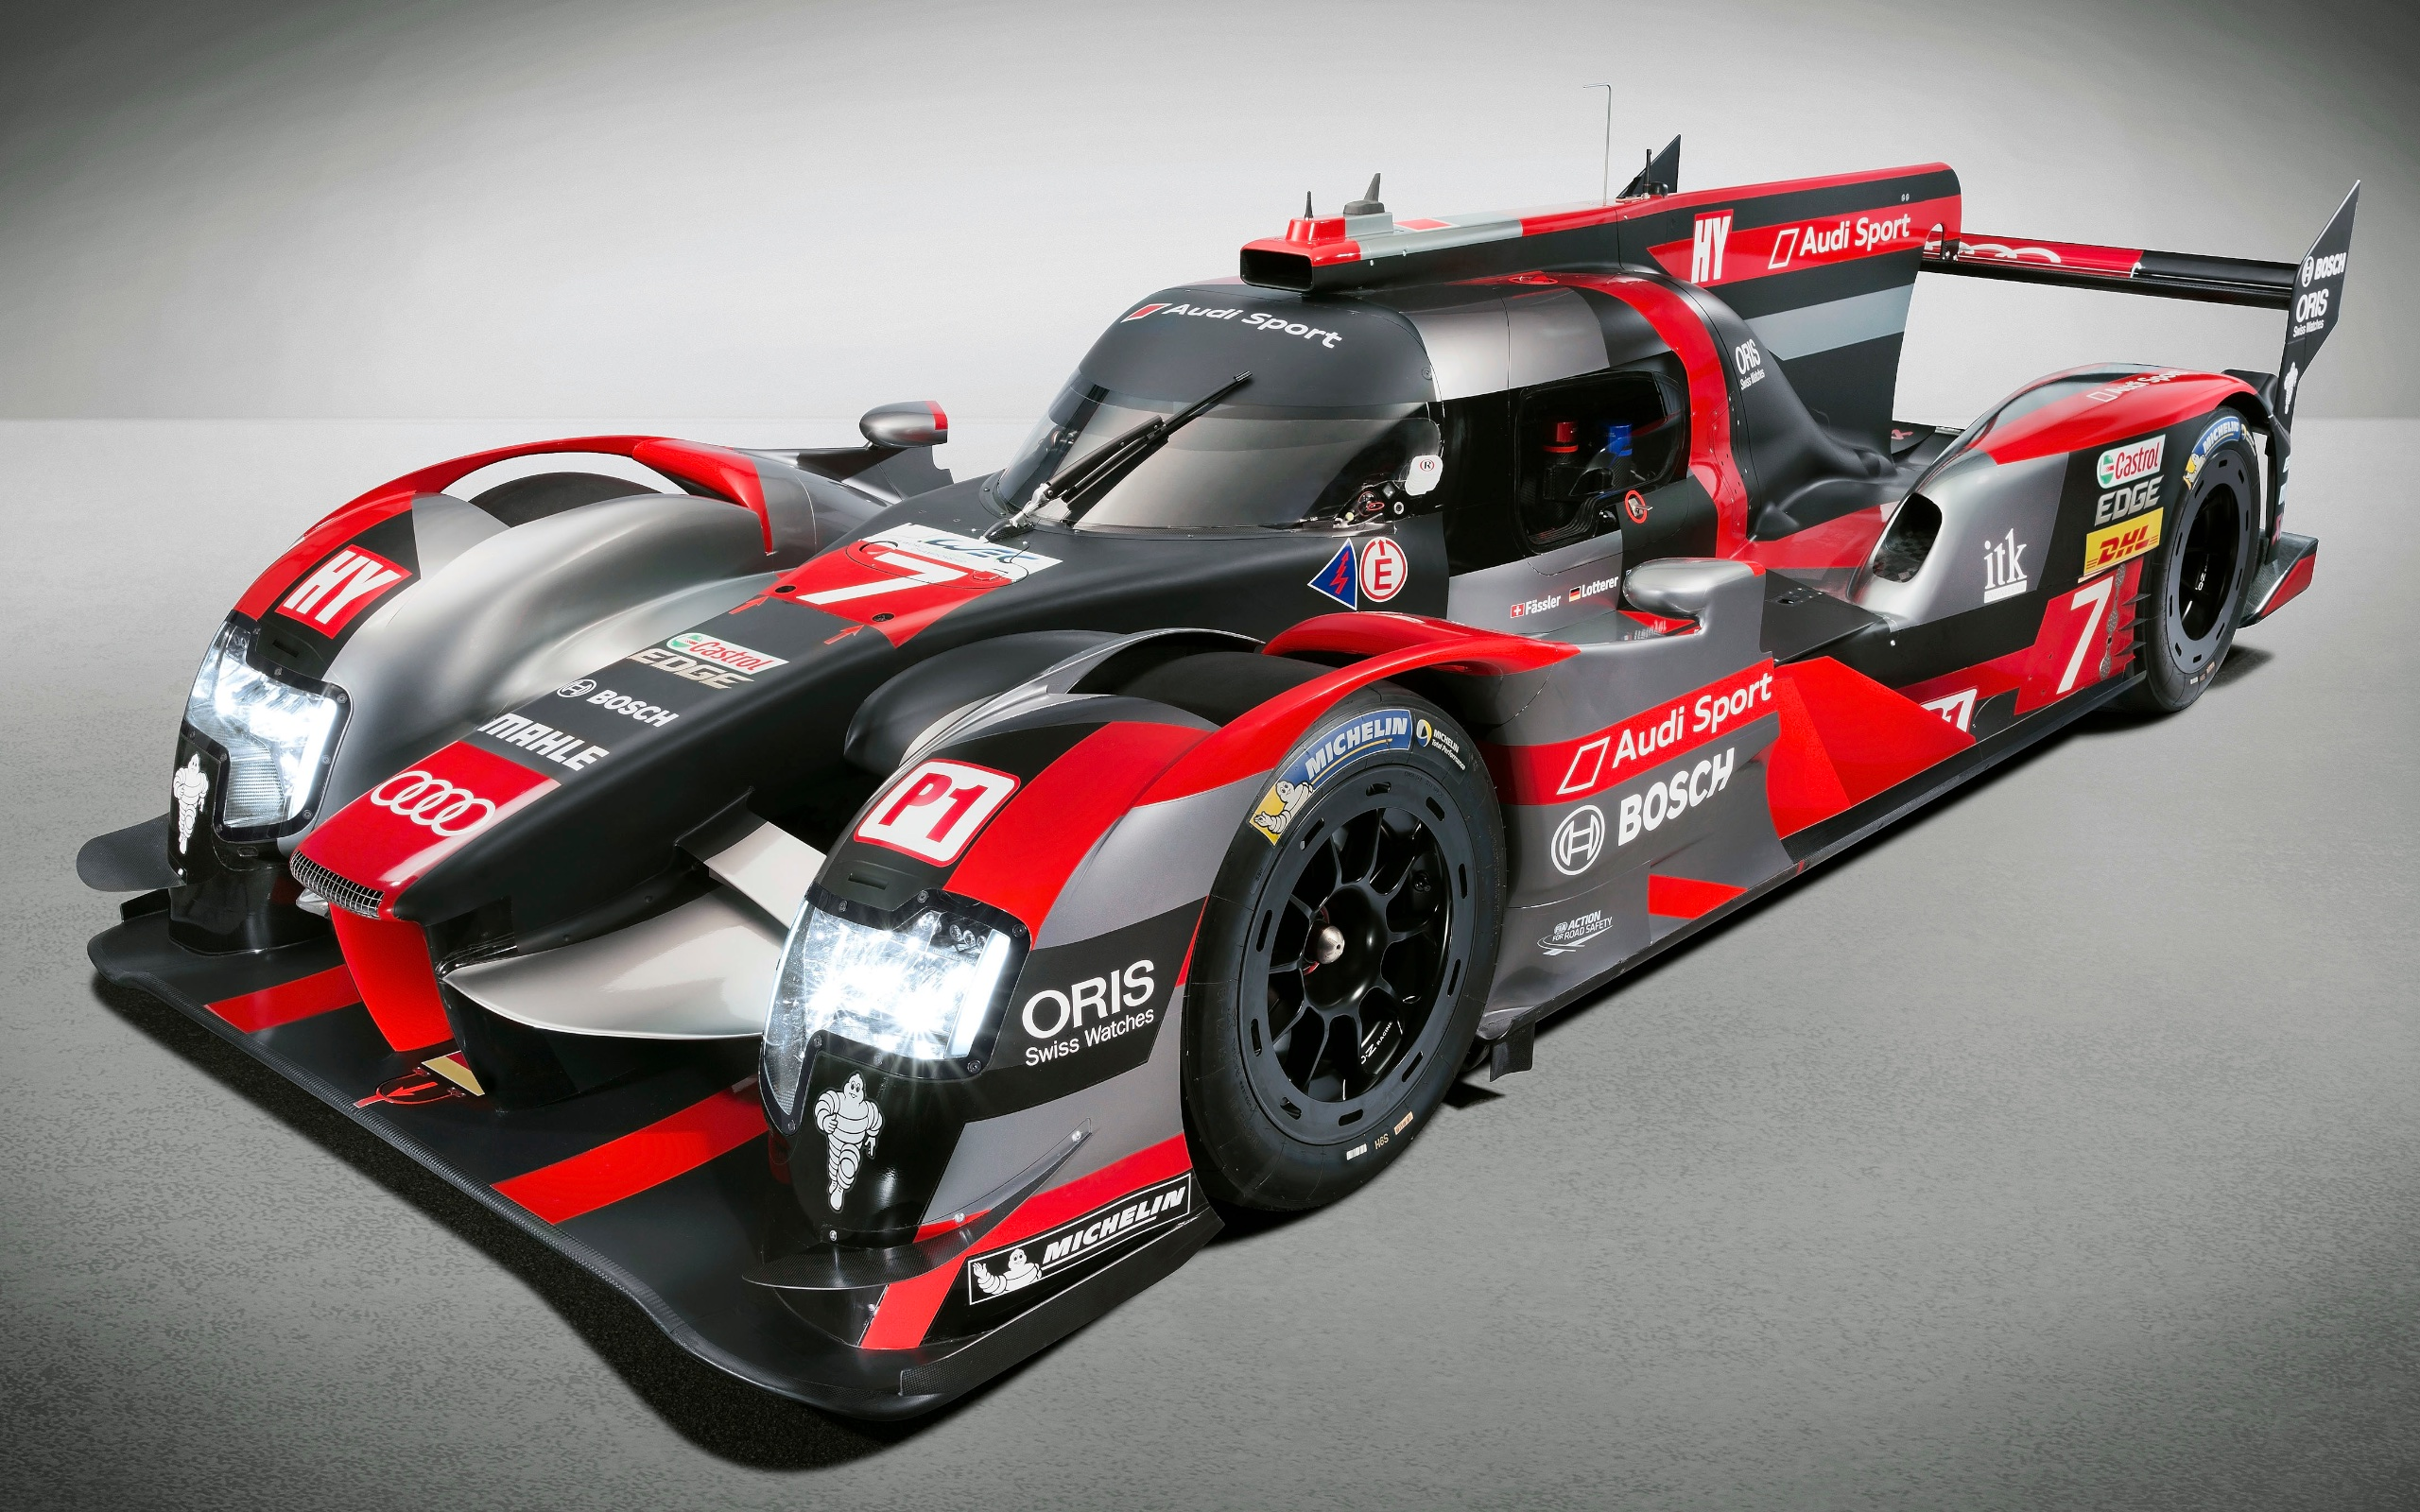 2016 audi r18 new details on 1 000 hp wec racer. Black Bedroom Furniture Sets. Home Design Ideas